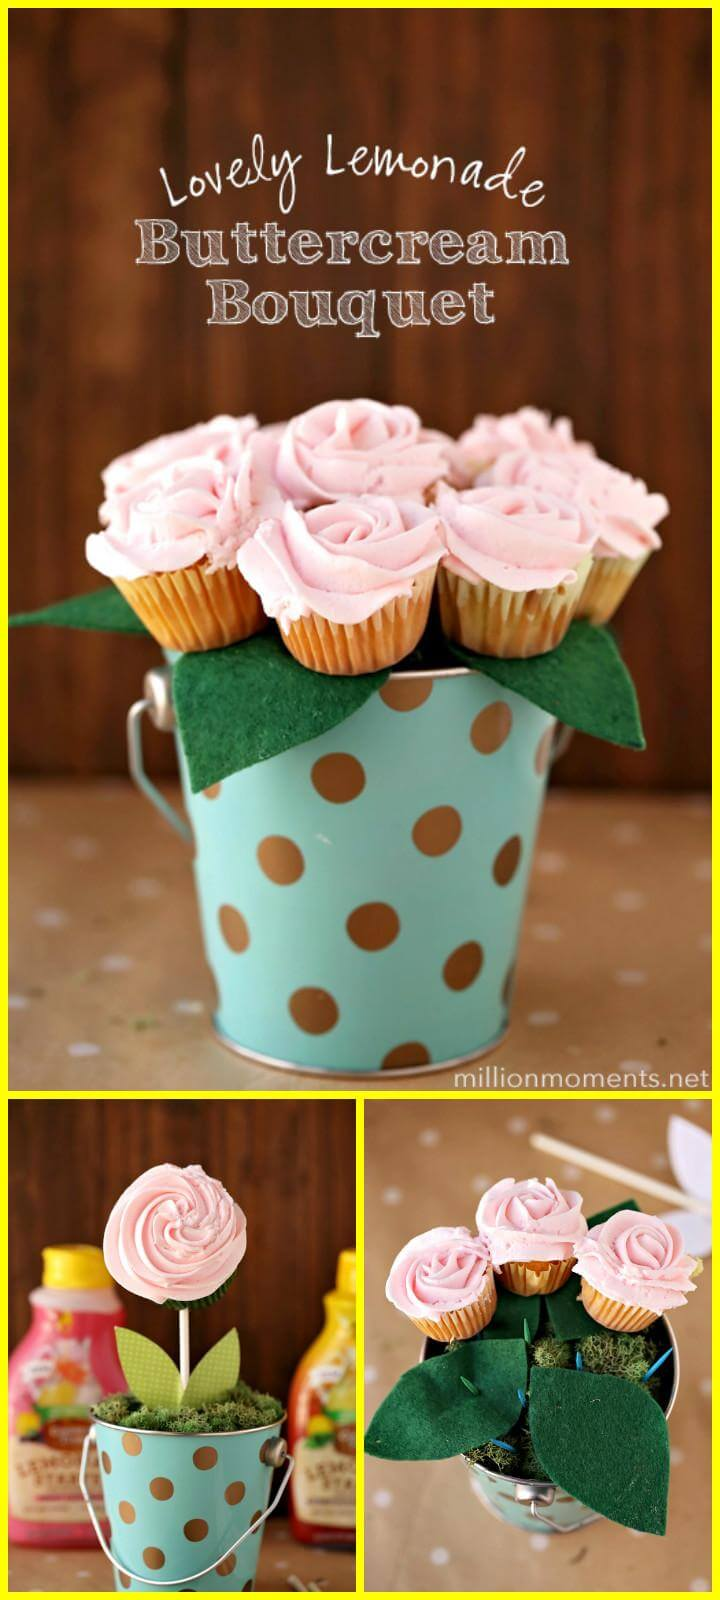 easy handmade lemonade buttercream bouquet